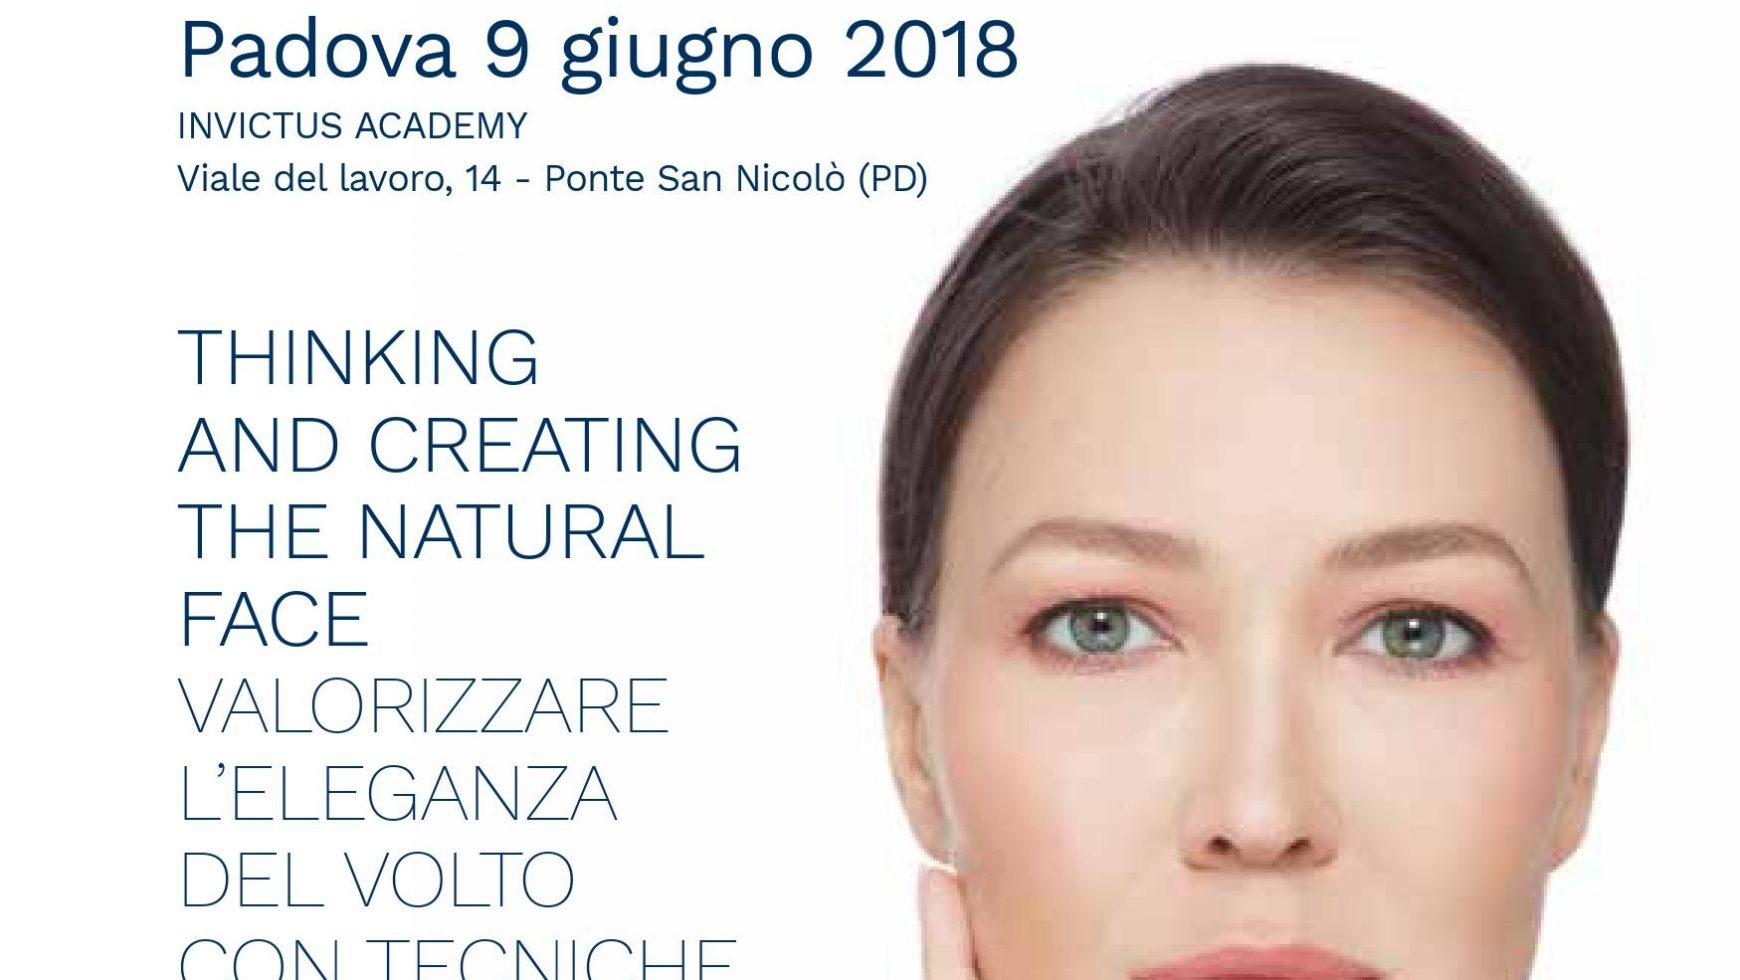 MASTERCLASS Thinking and Creating the Natural Face Valorizzare l'eleganza del volto con tecniche combinate di tossina botulinica e filler